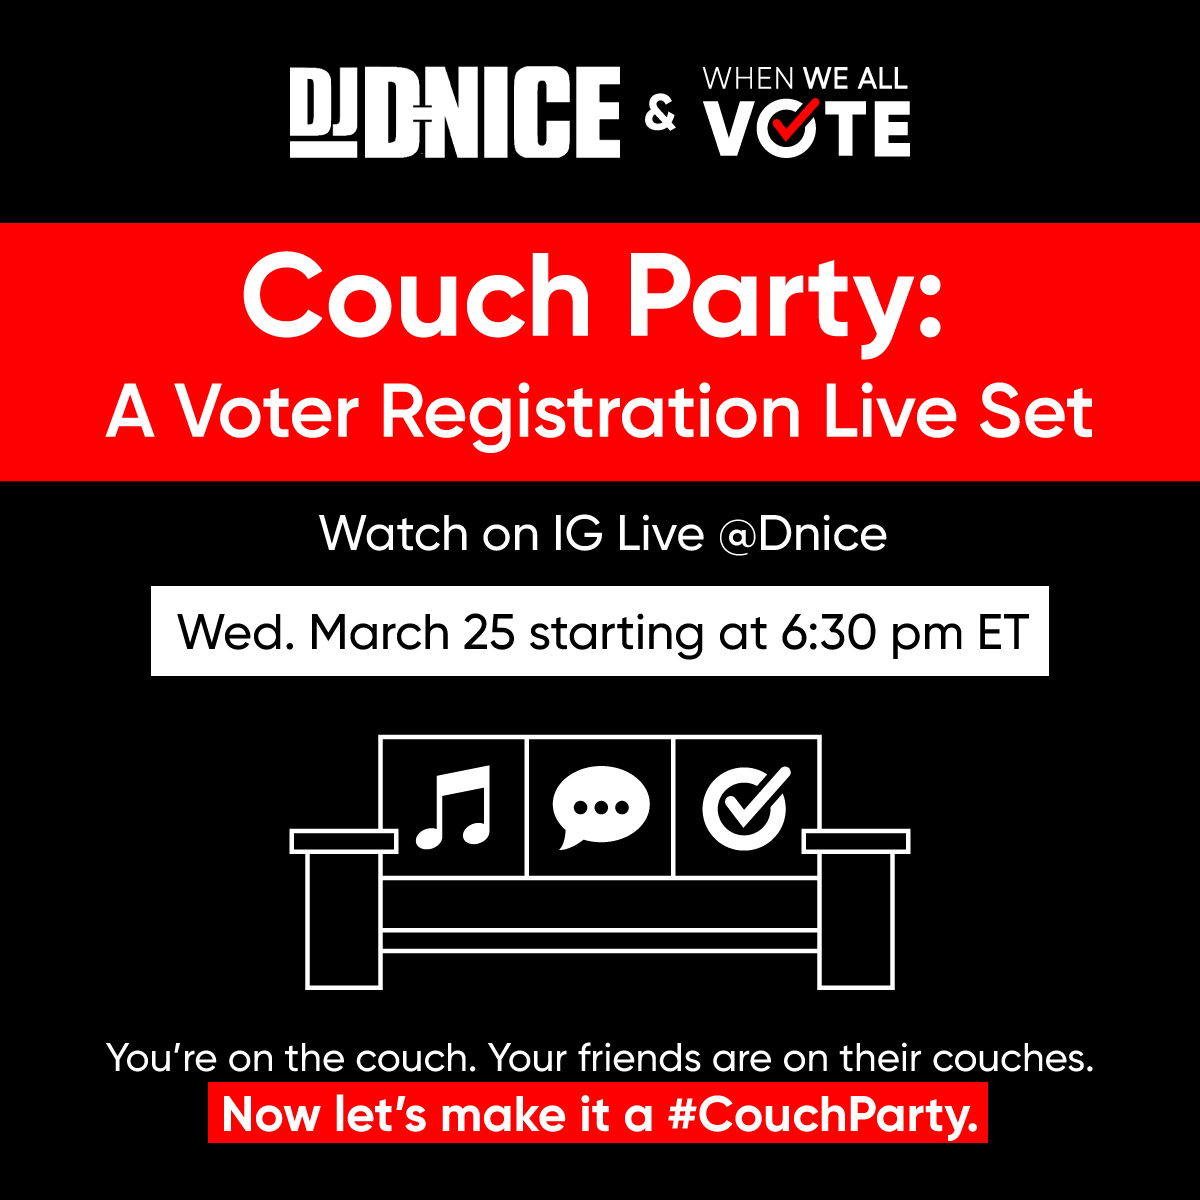 #CouchParty virtual party flyer